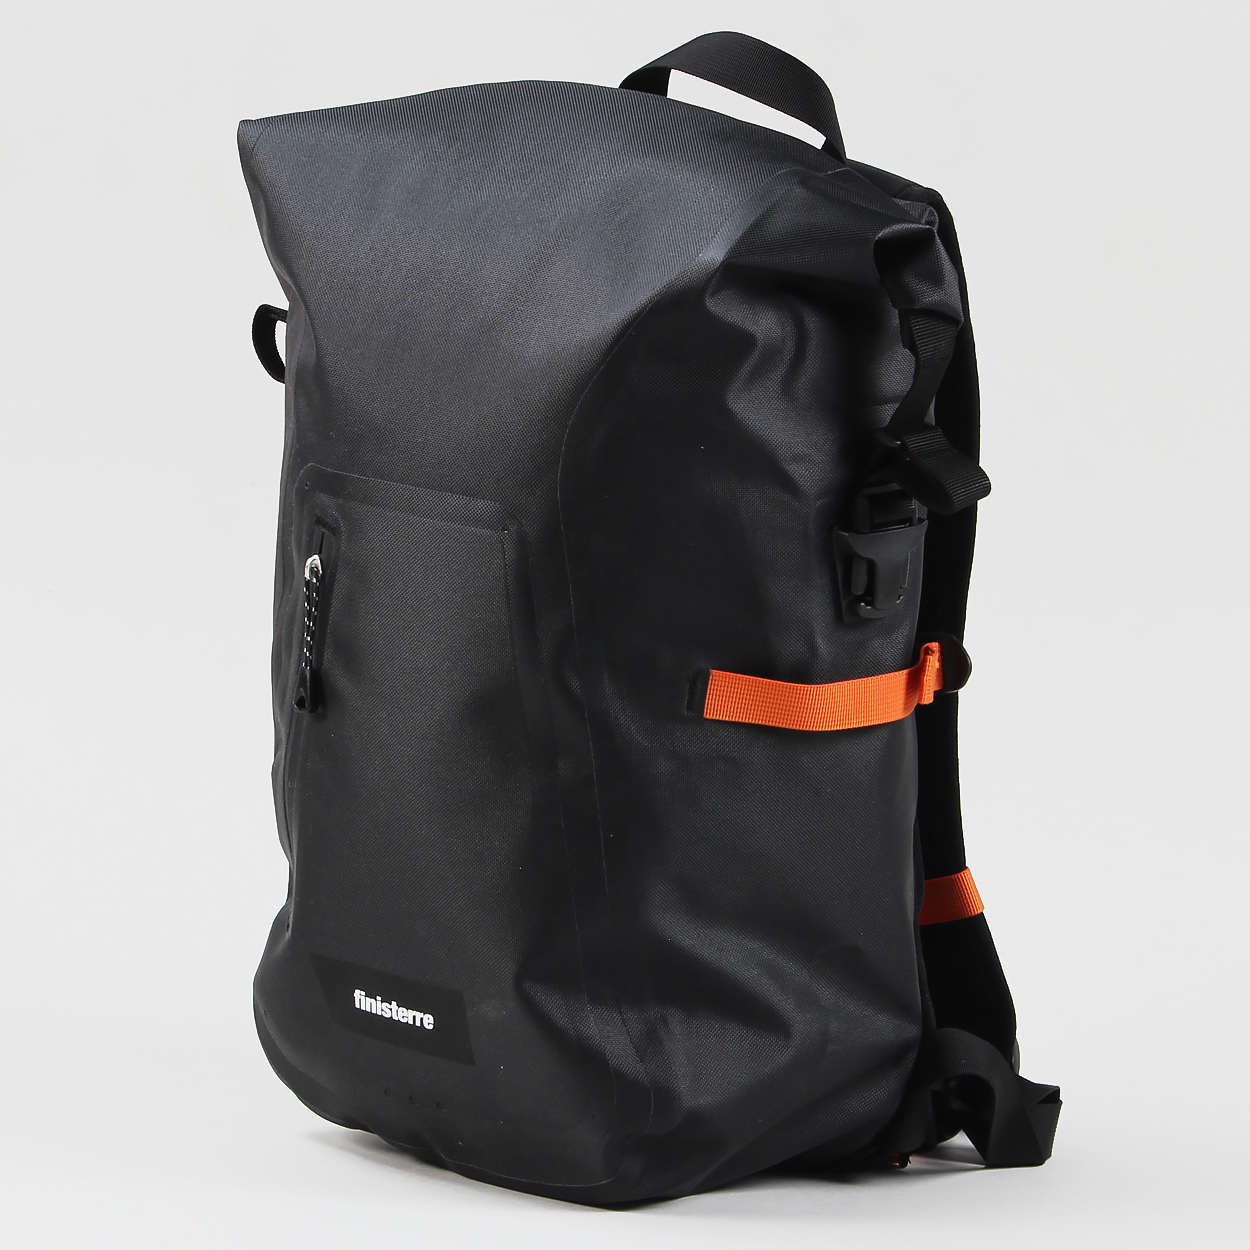 The North Face TNF Waterproof Daypack Black Rucksack Bag Outdoor £45.00 4dcf17174897